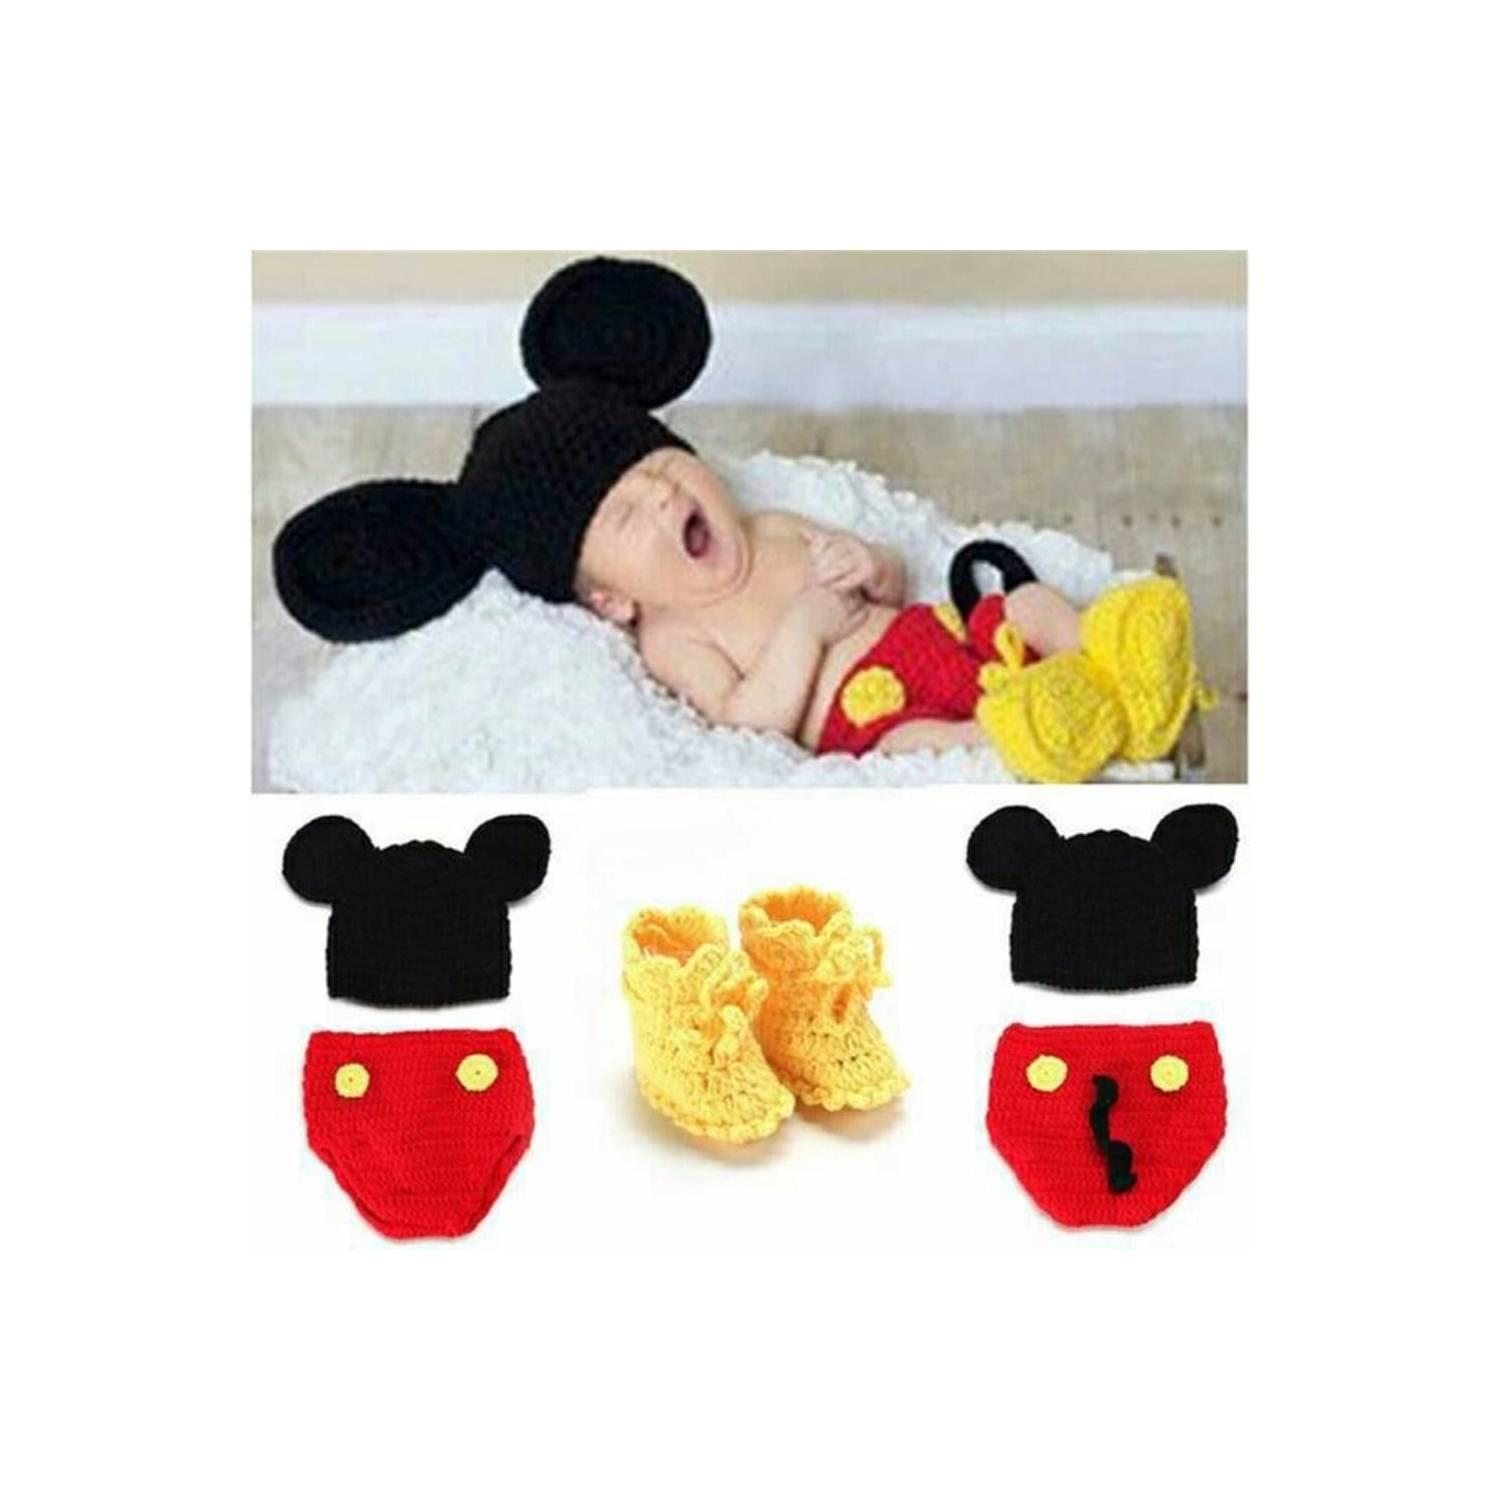 Buy Sell Cheapest Special Baby Set Best Quality Product Deals Mitu Pack Biru Mtb010 Terbatas Kostum Rajut Foto Mickey Mouse Hotproduct